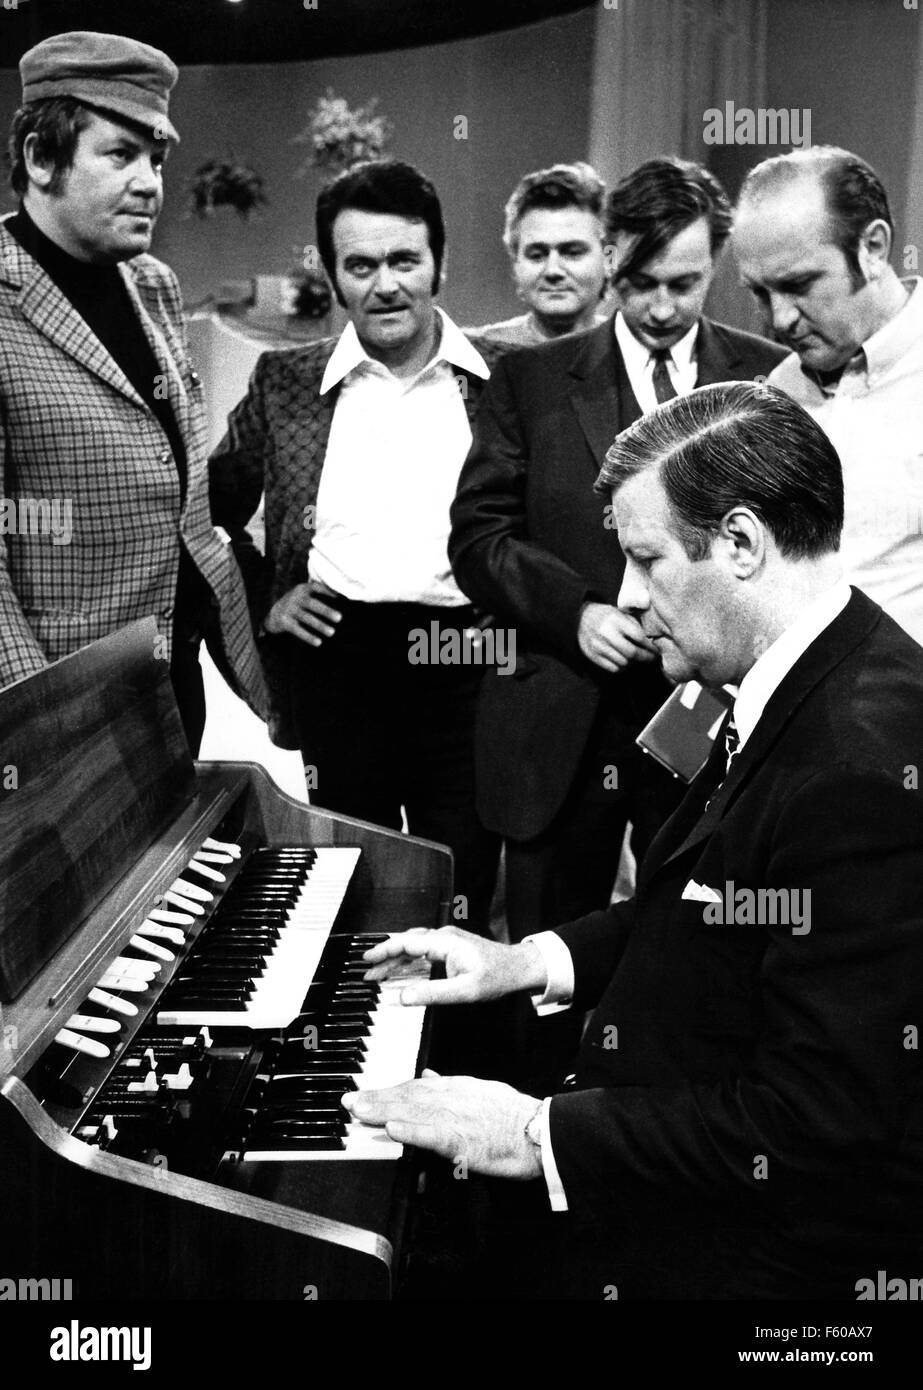 Helmut Schmidt plays organ on 6 July 1972 at the ZDF studio in Wiesbaden. Wim Thoelke (L) and Max Greger (2nd from left) are watching him. On 23 December 2003, Schmidt becomes 85 years old. Stock Photo